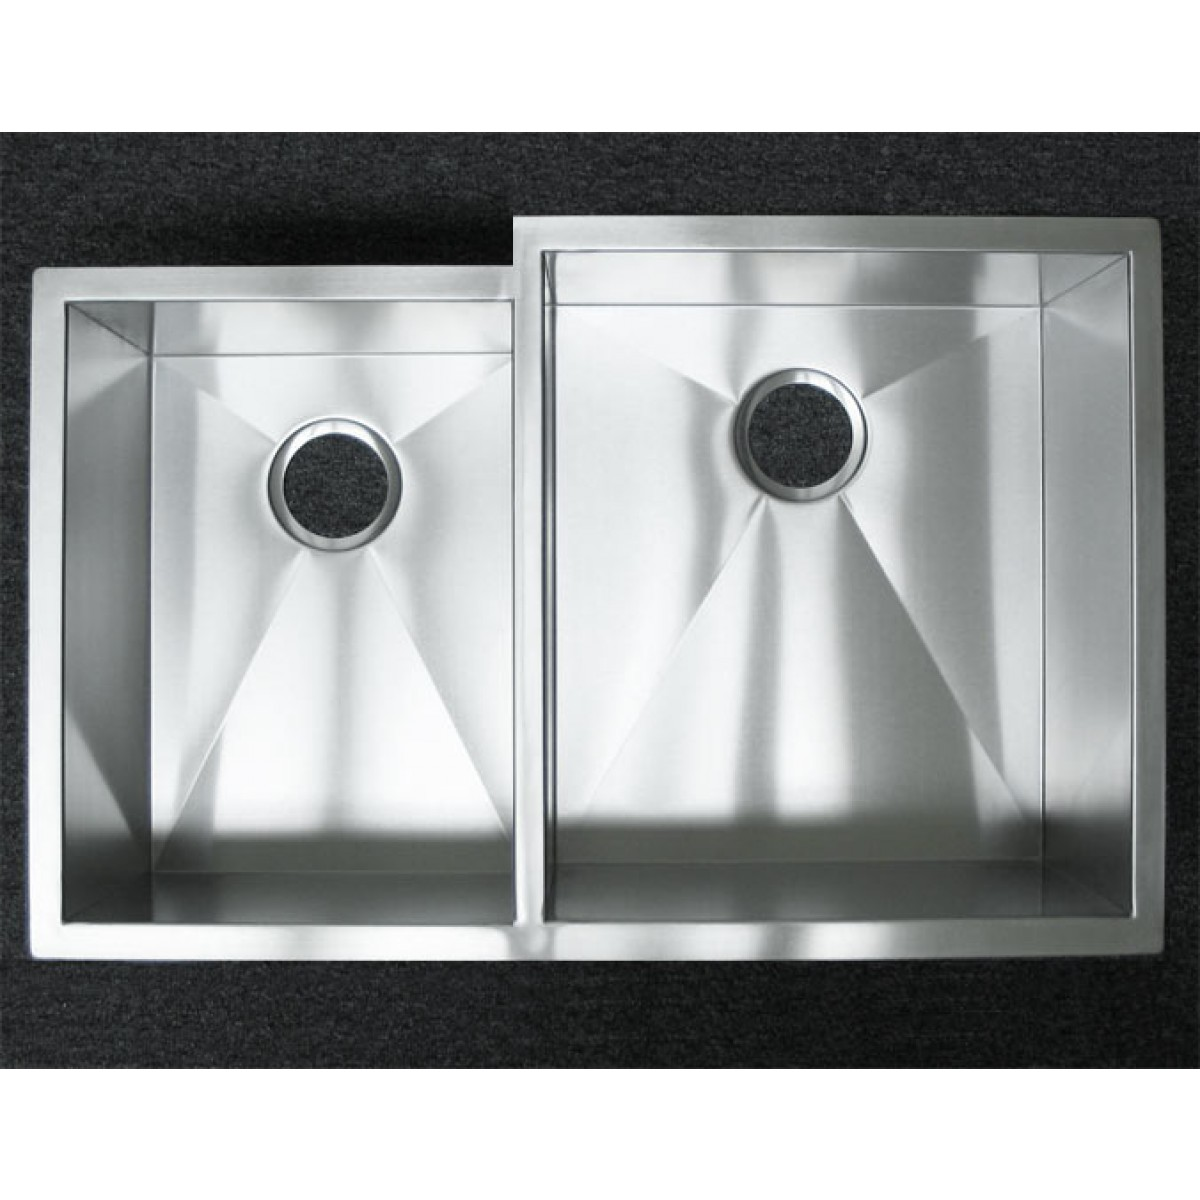 Beau 33 Inch Stainless Steel Undermount 40/60 Offset Double Bowl Kitchen Sink  Zero Radius Design